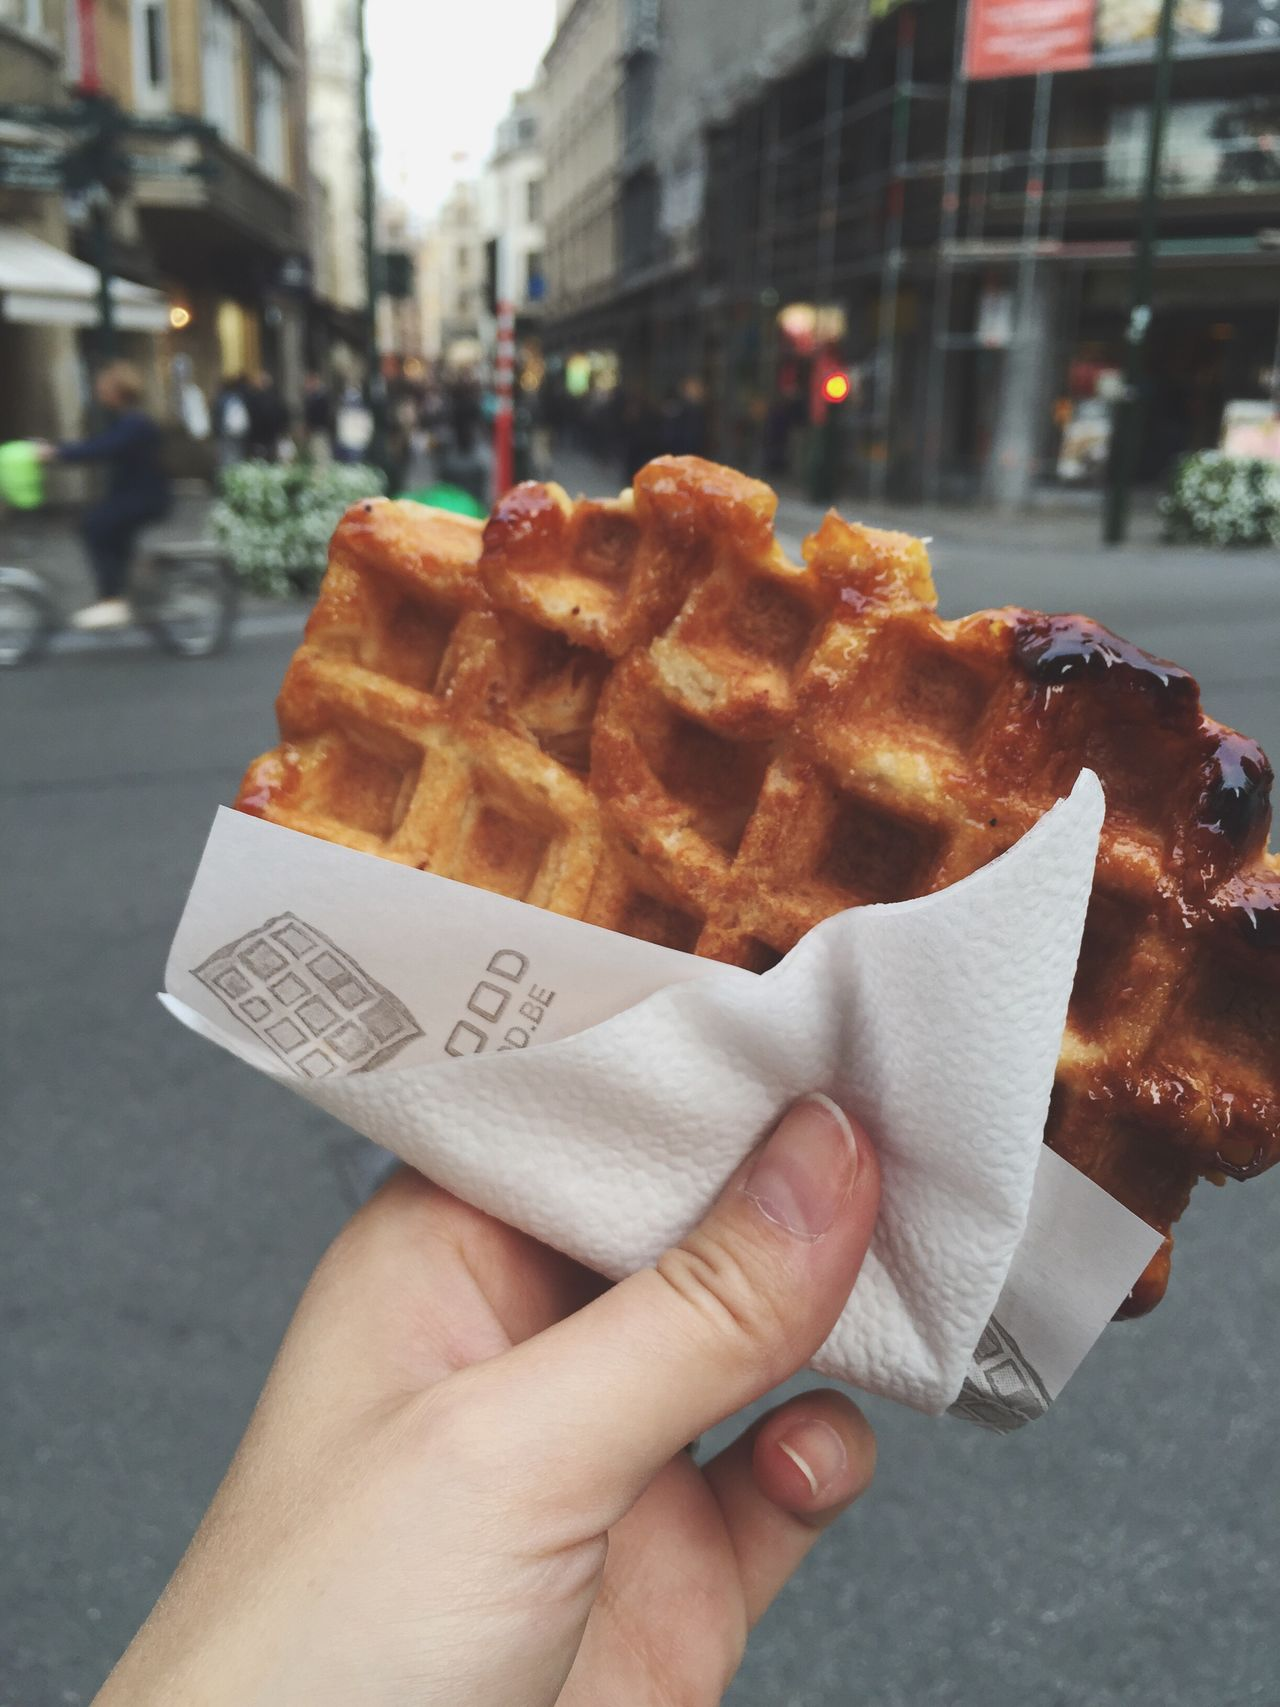 Street food Street City Food Holding Ready-to-eat ShareTheMeal Yummy Waffle Brussels